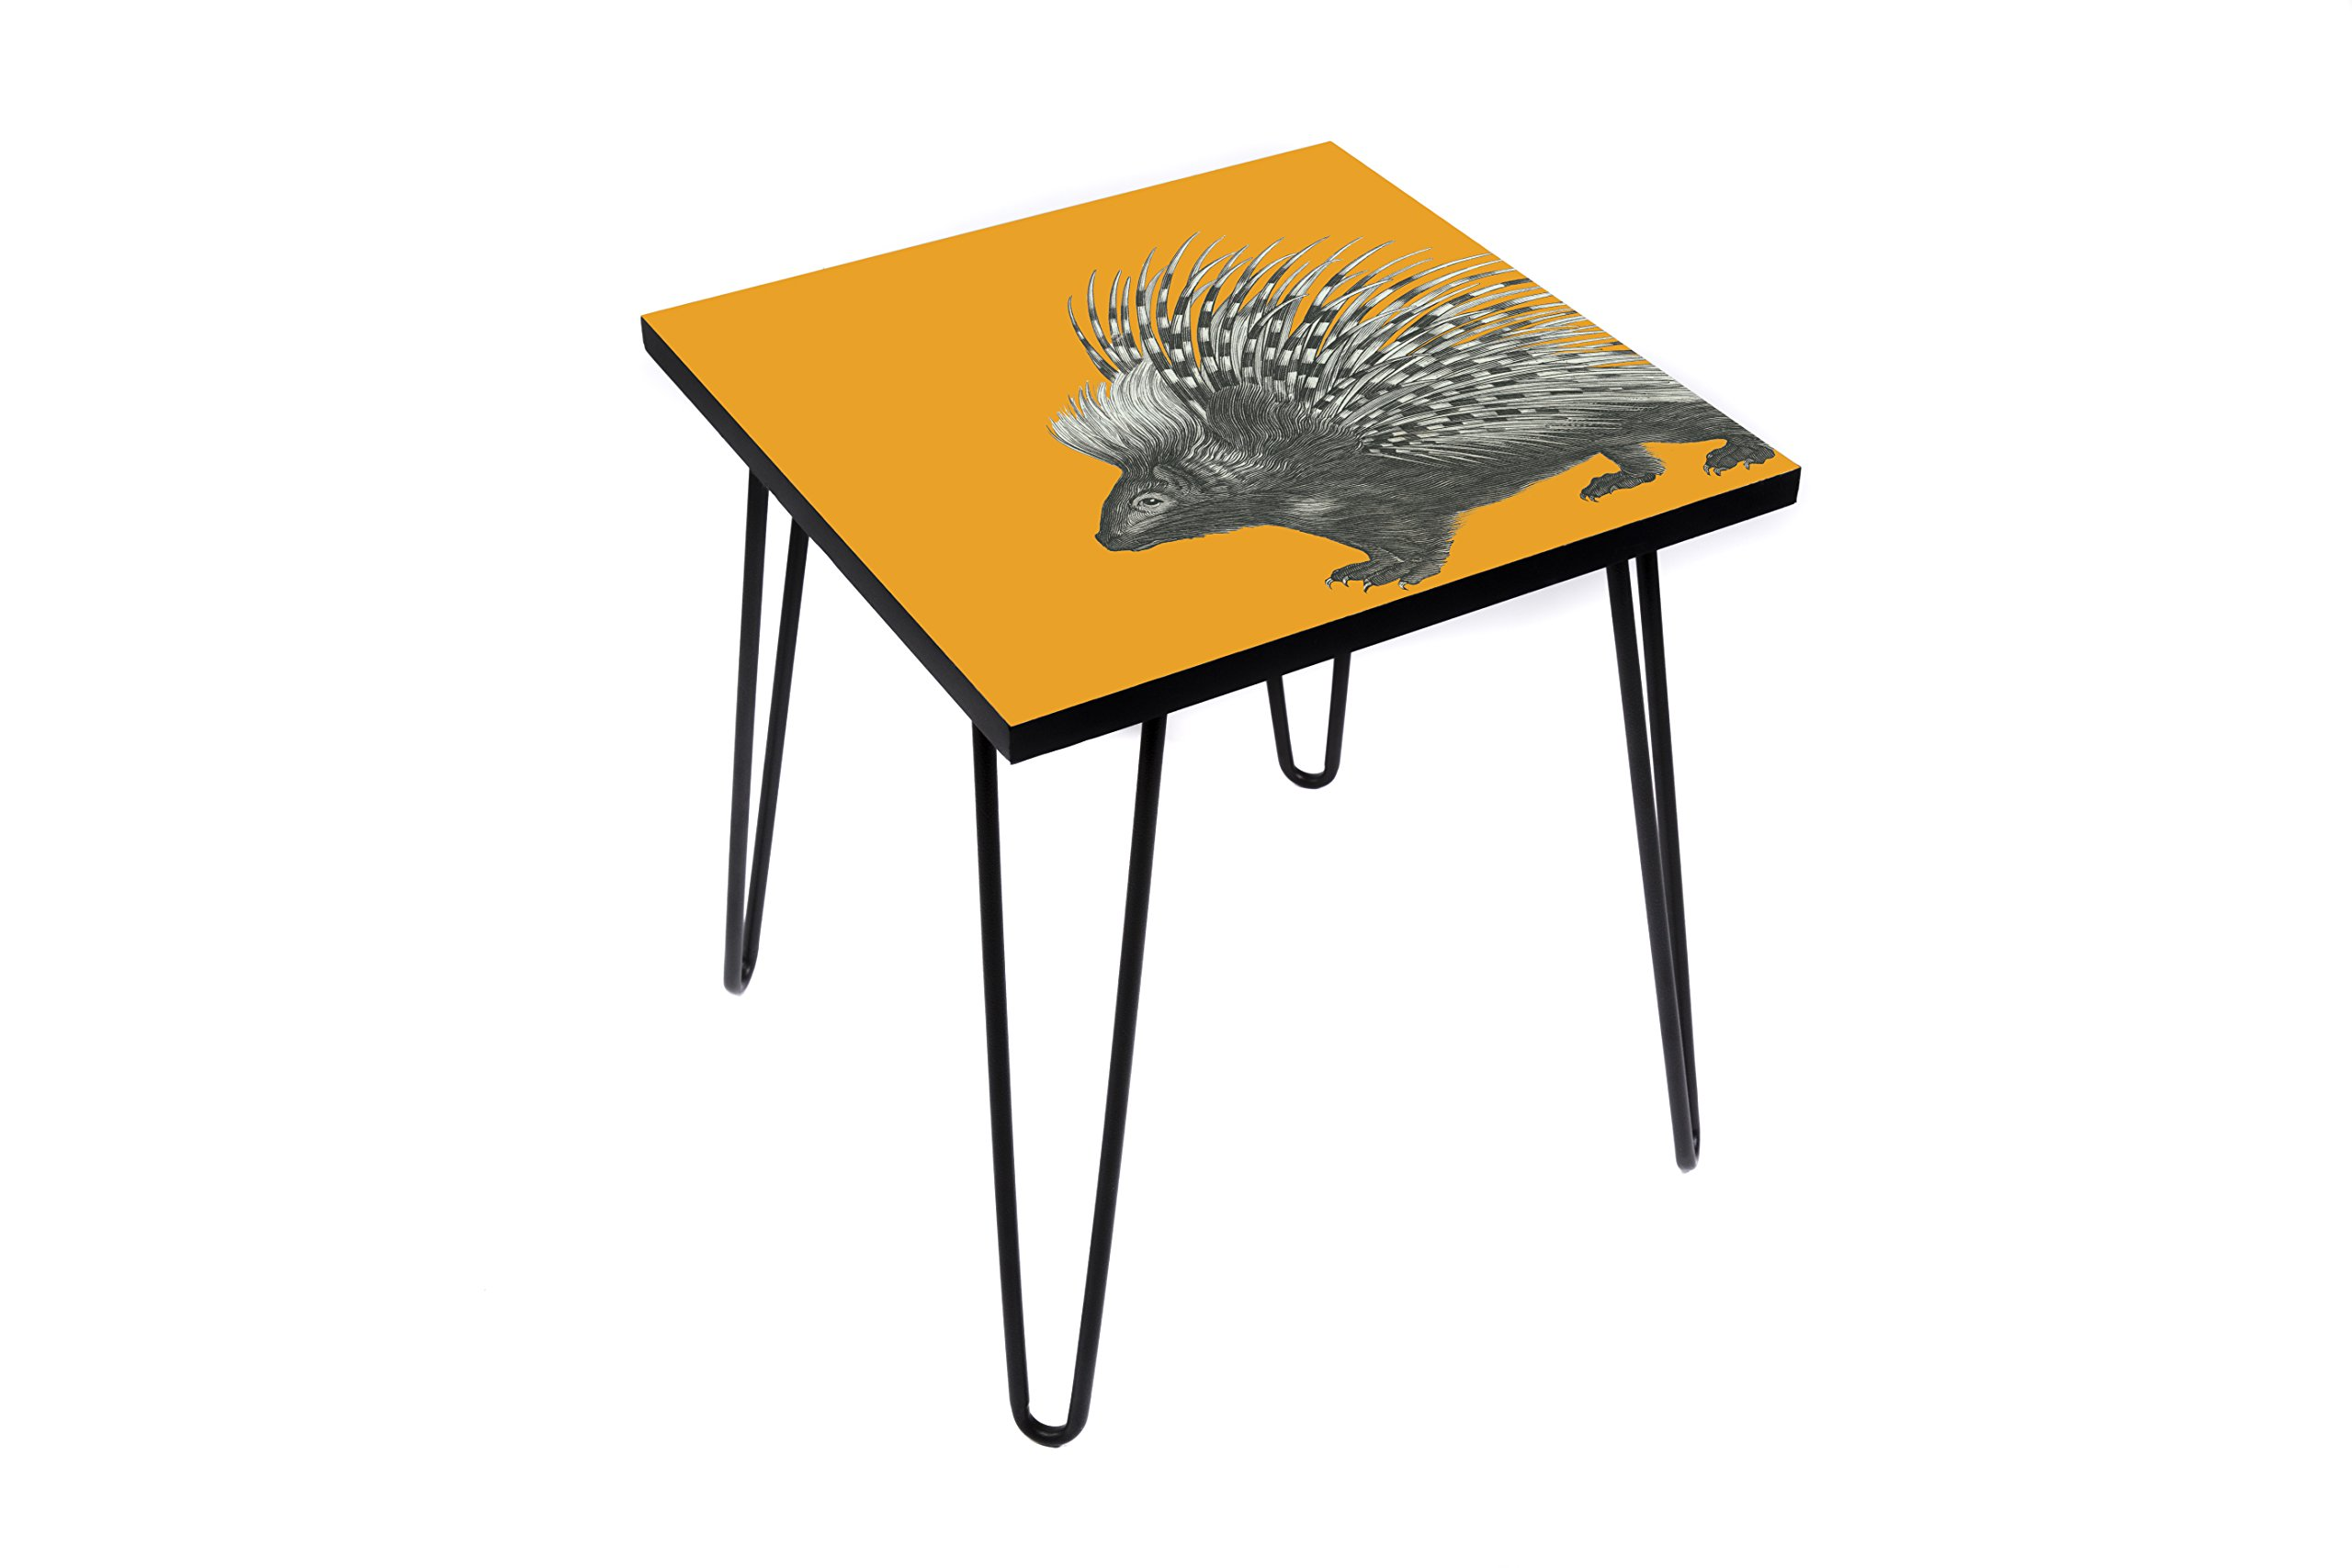 Design Your Own Table - Prickly 20 Inches Table